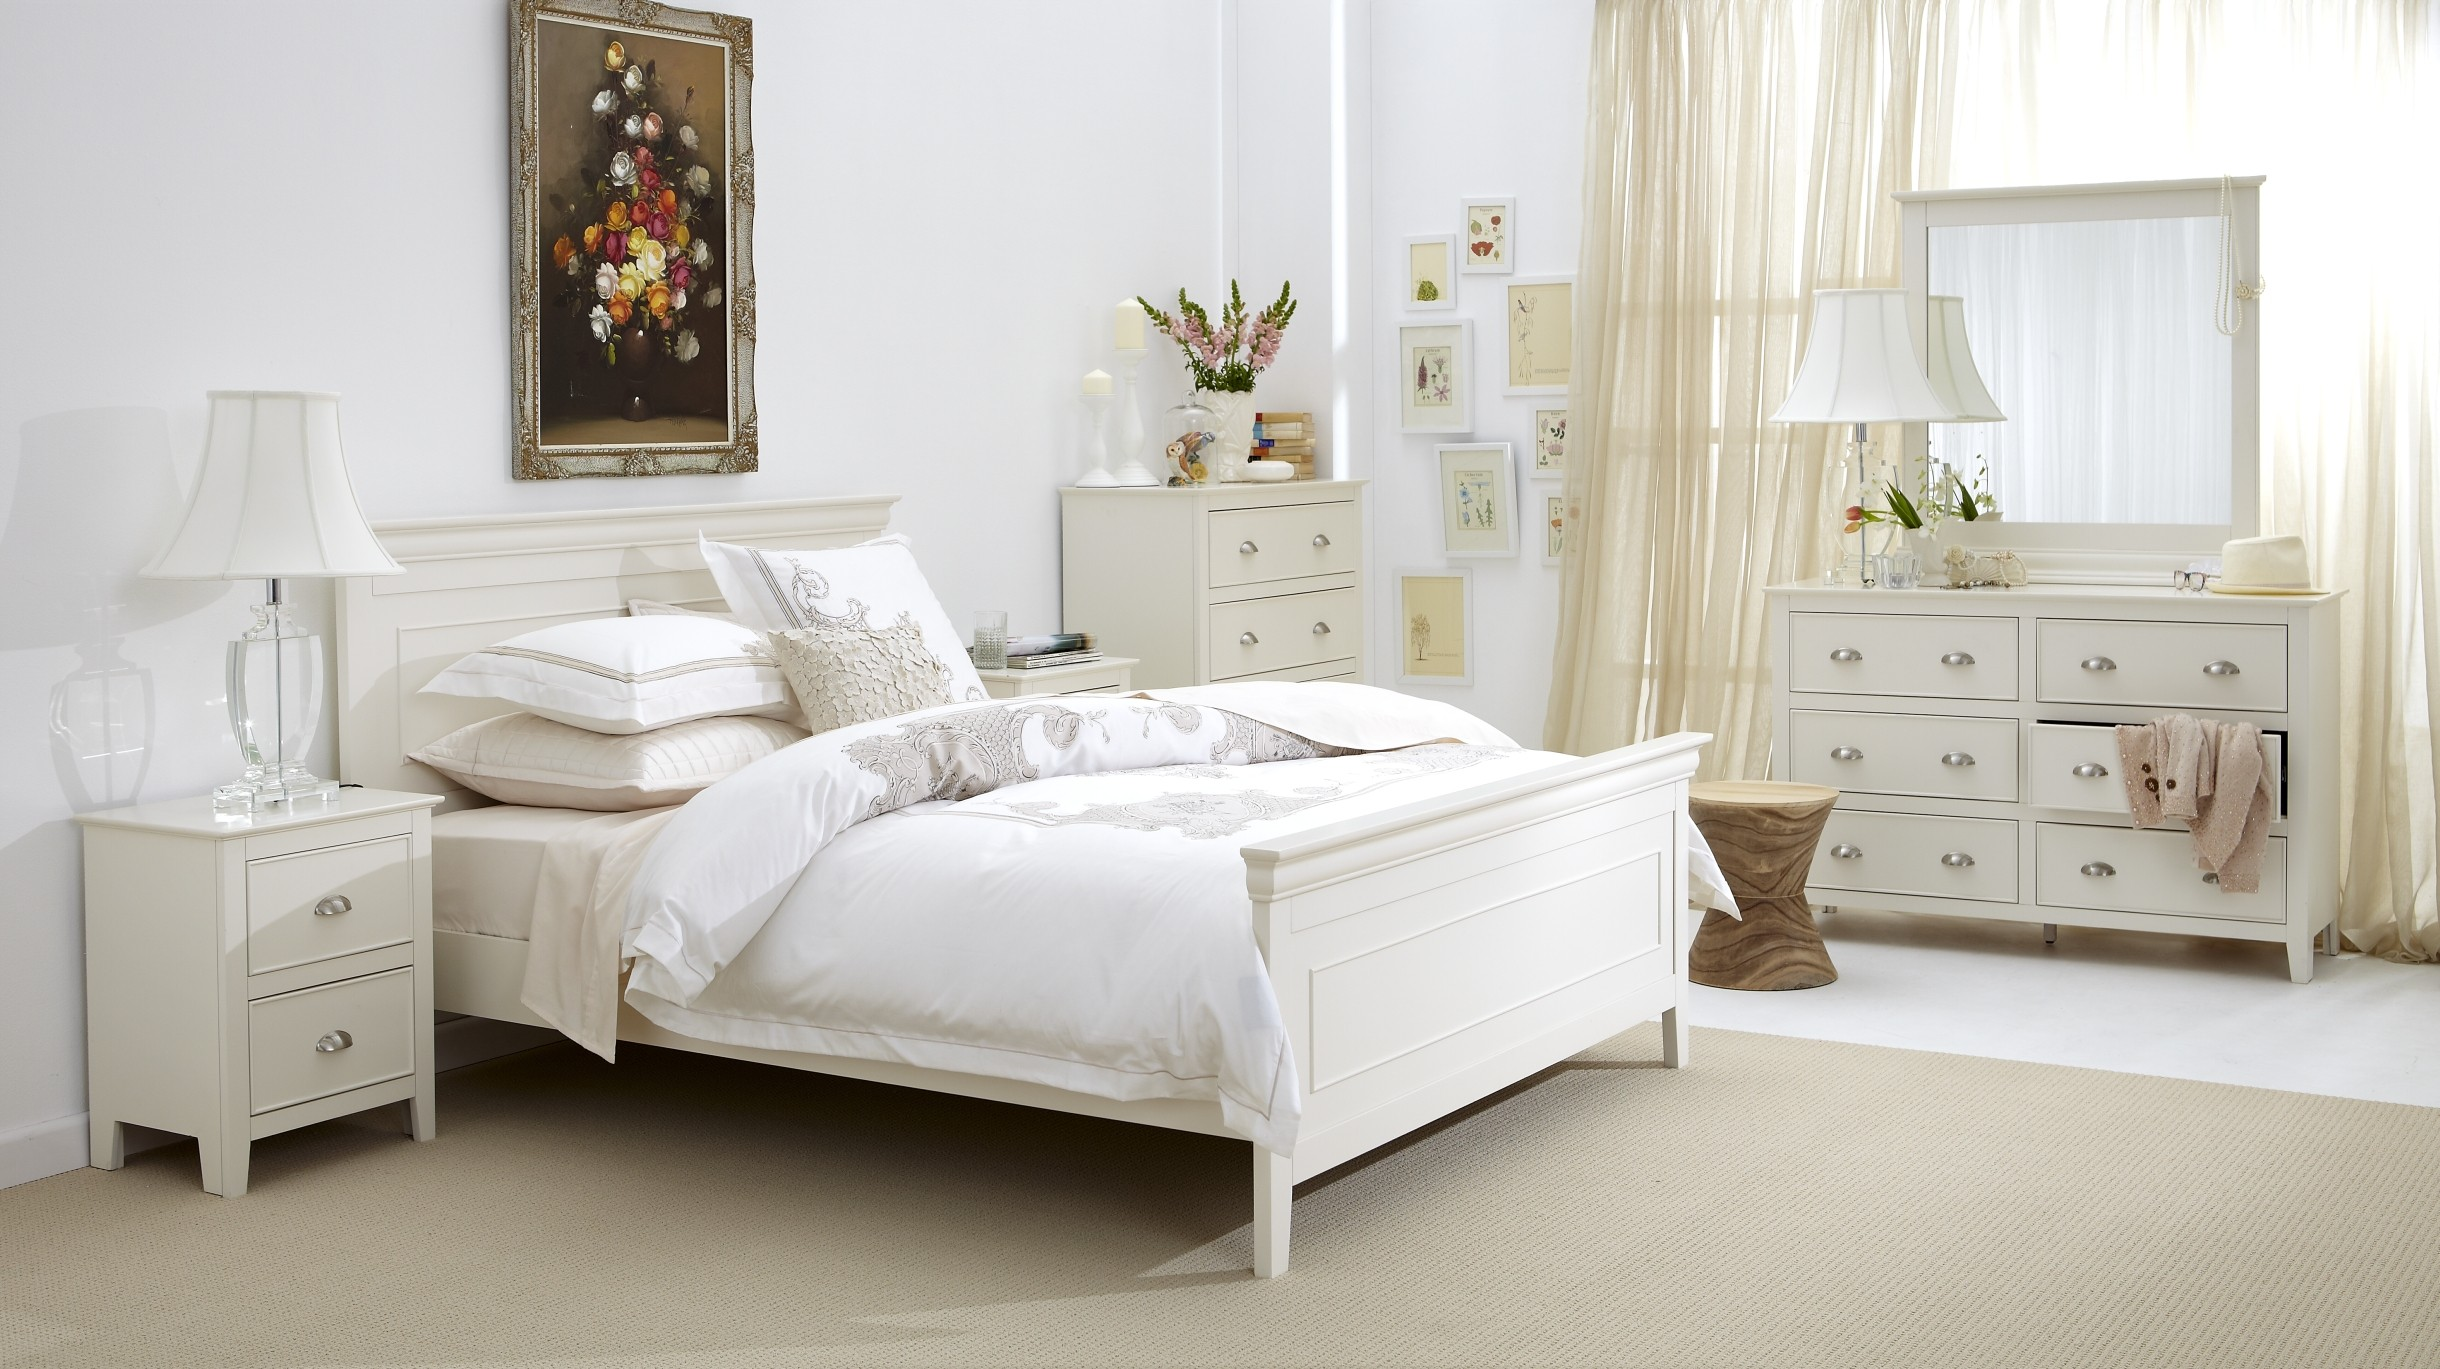 decorating a room with white furniture photo - 4